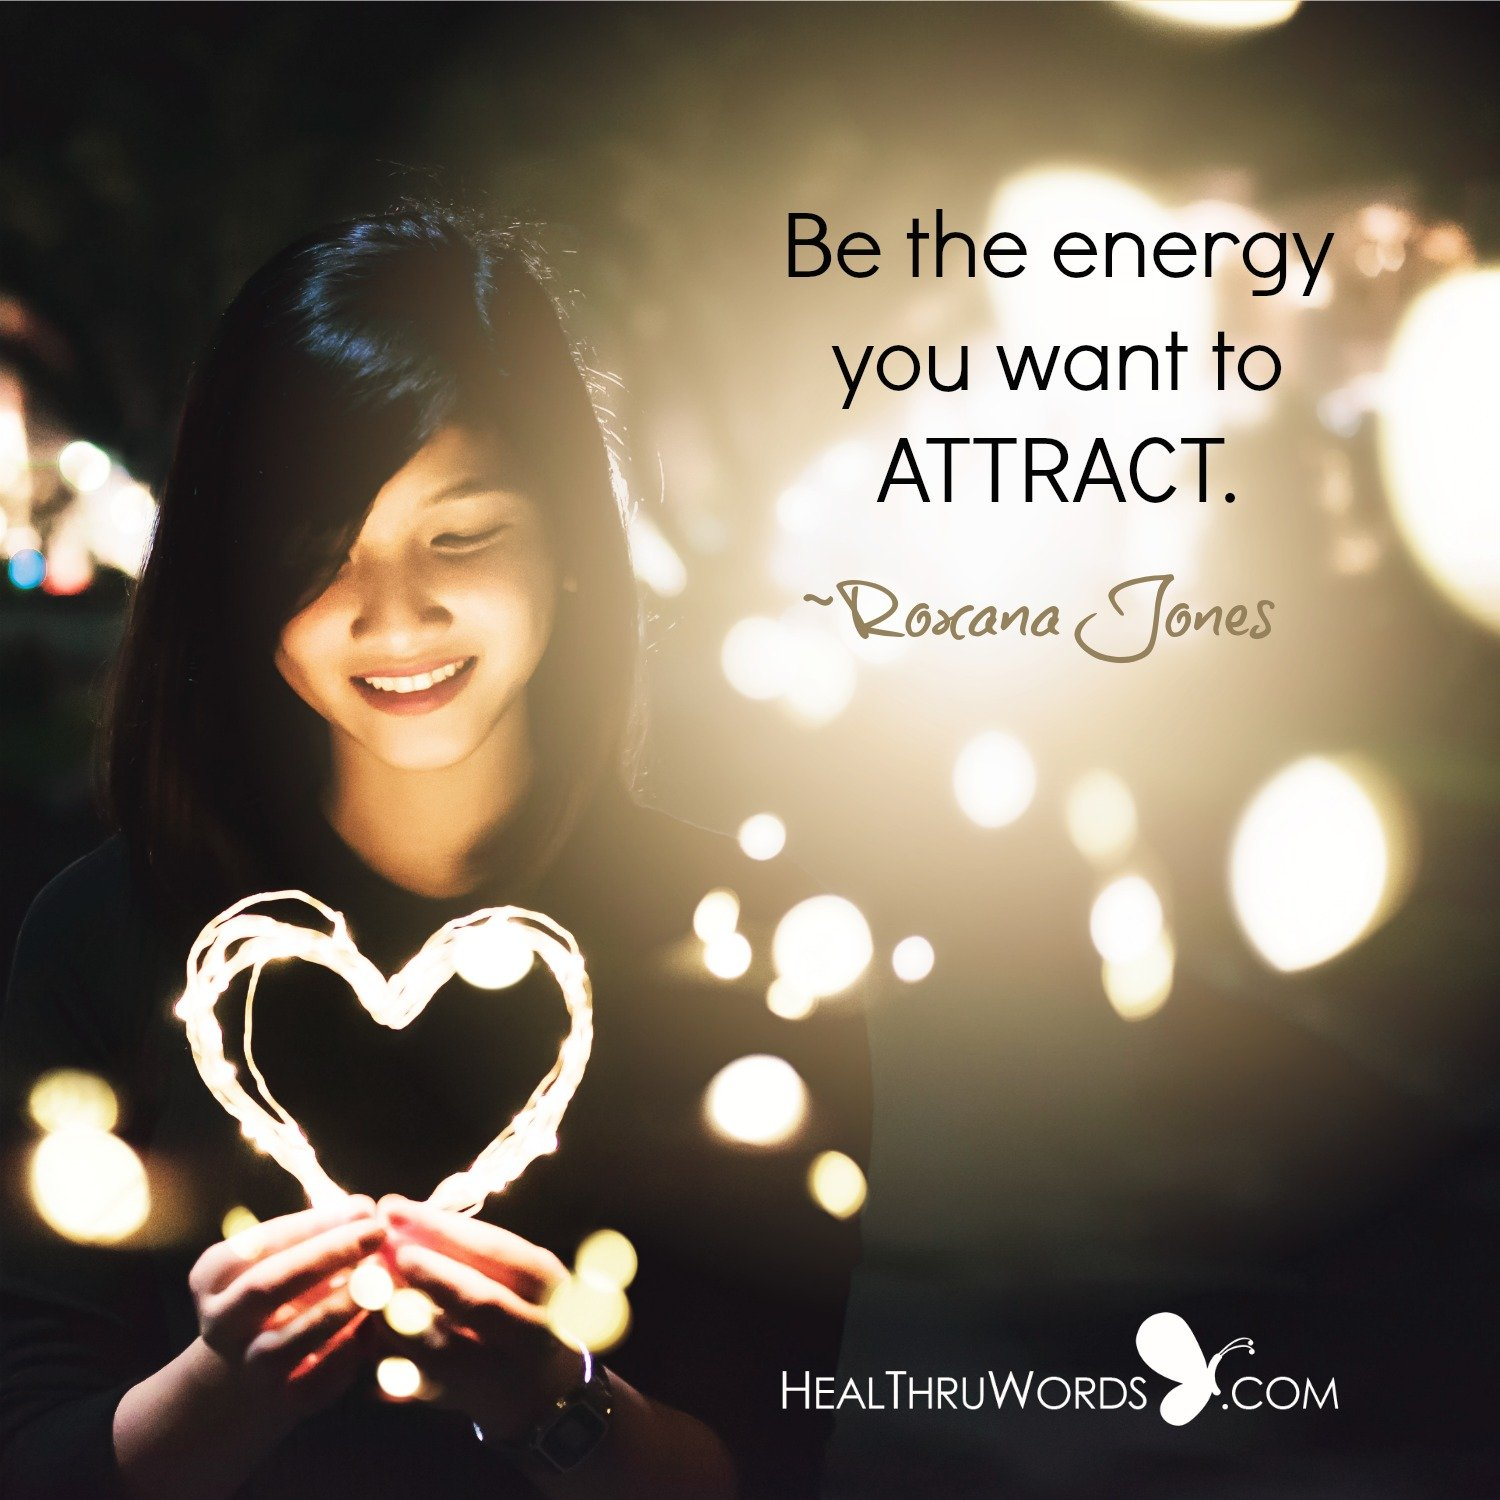 Inspirational Image: Attraction